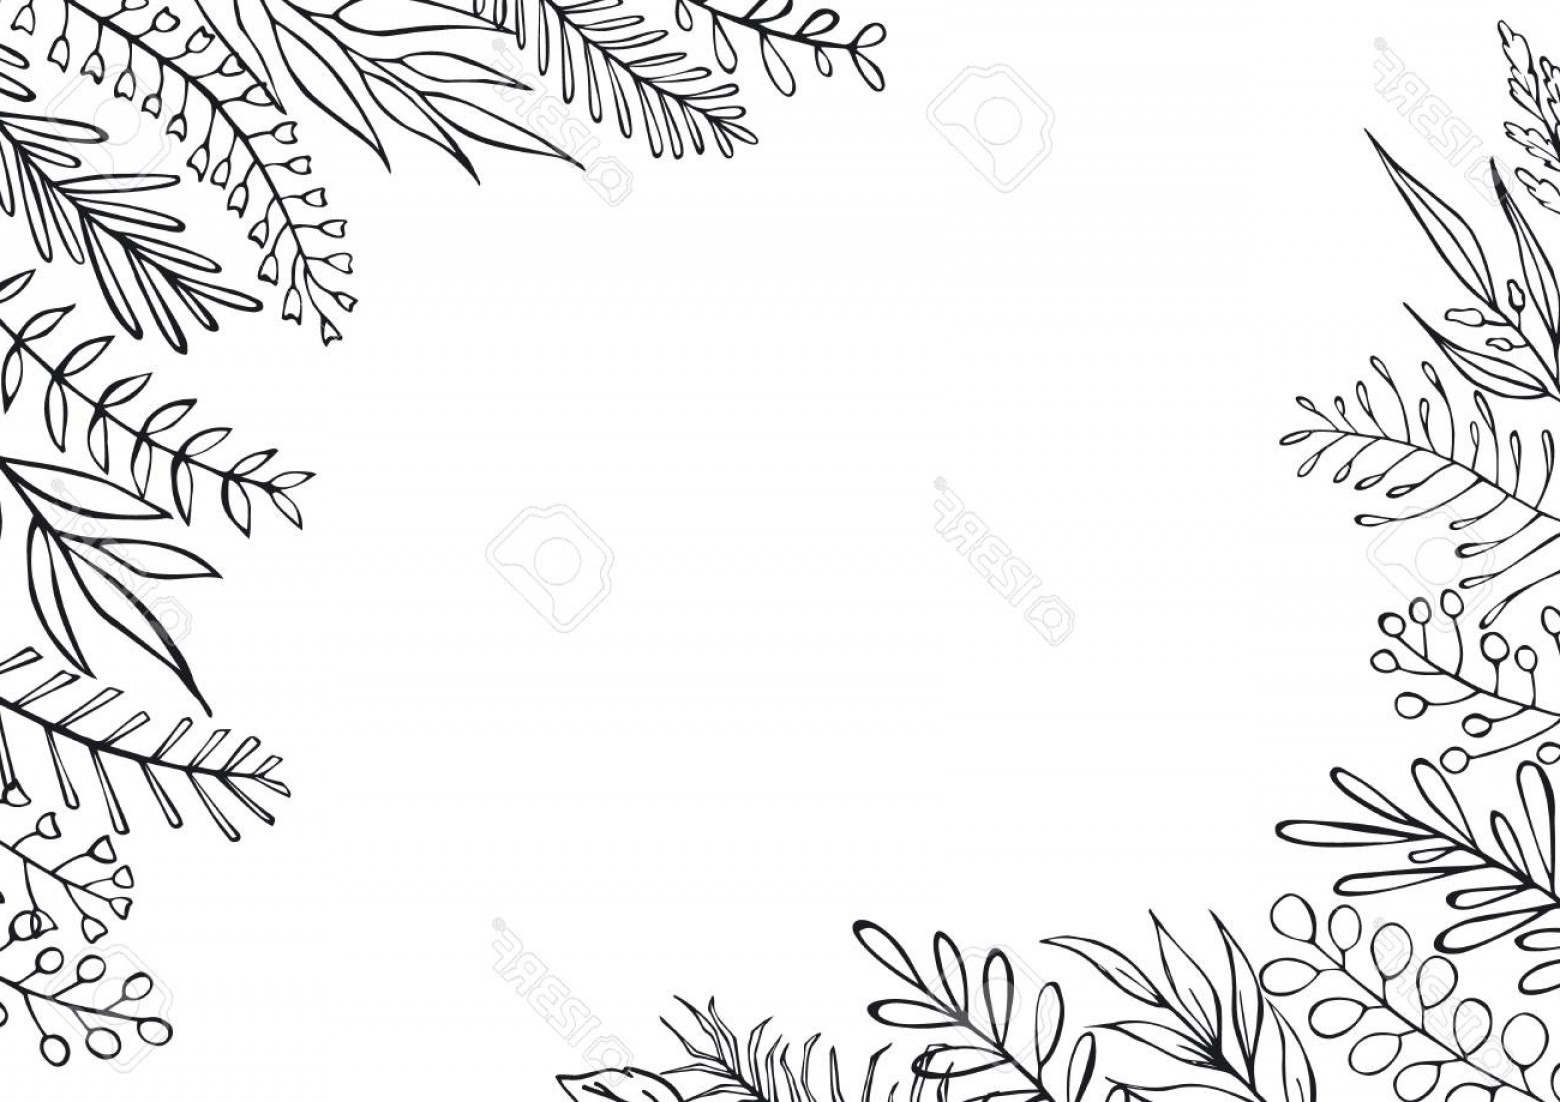 Photostock Vector Black And White Floral Hand Drawn.